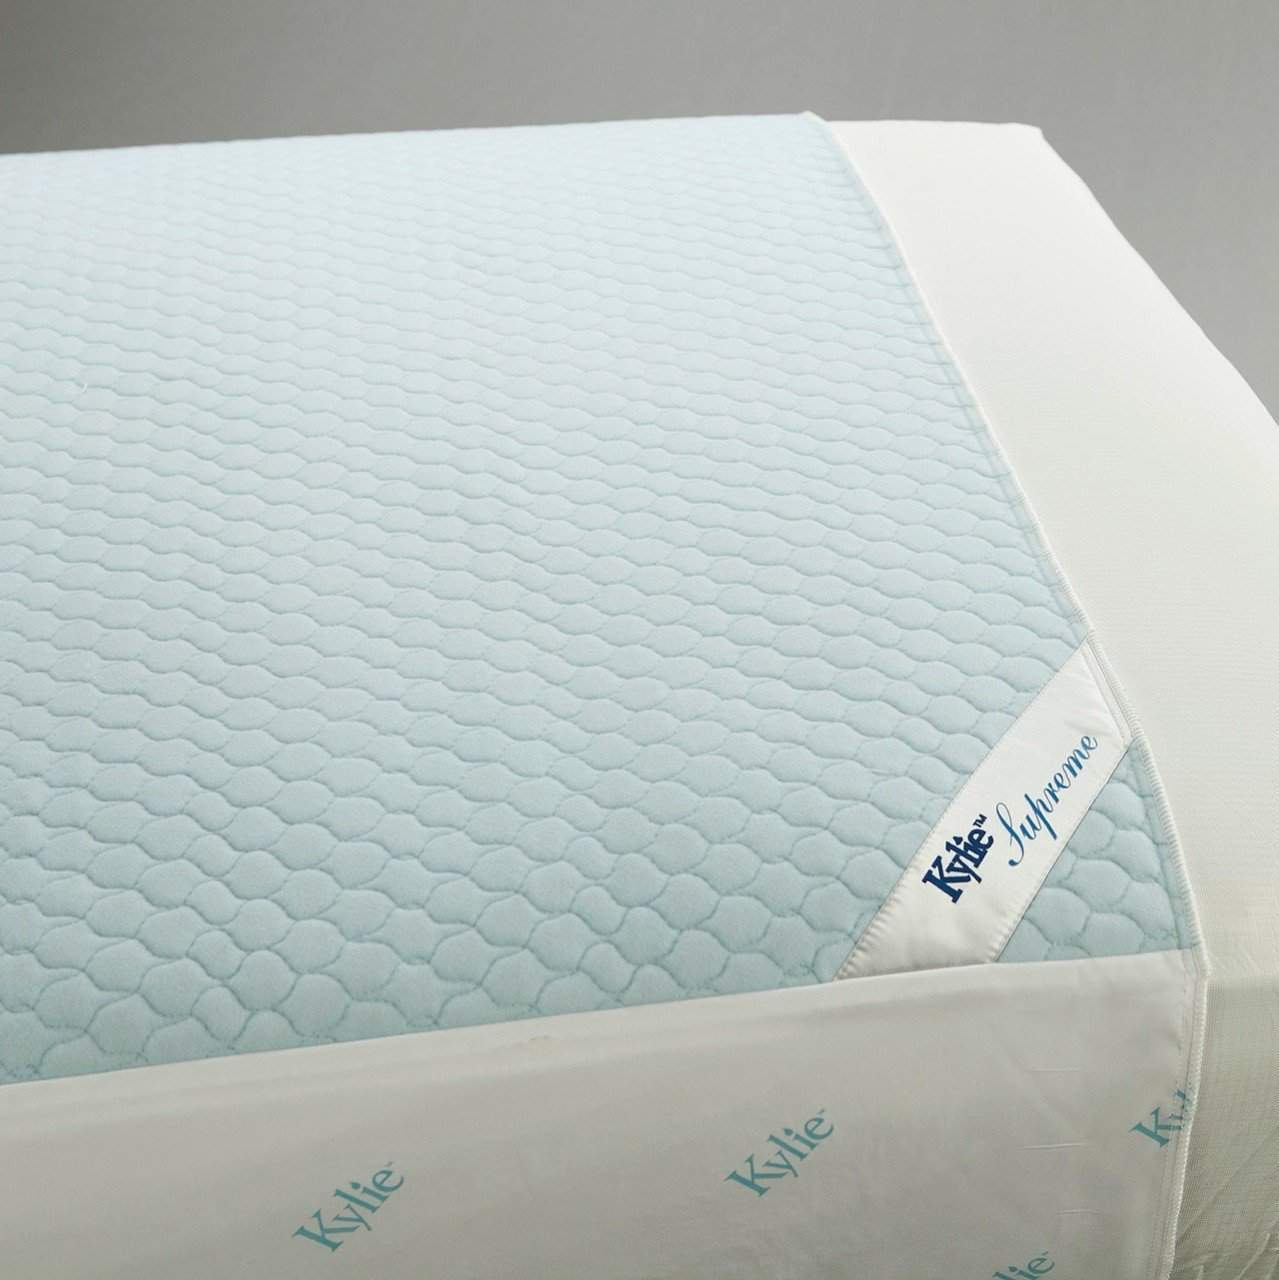 Kylie Bed Supreme Protector Sheet K125290 by Kylie